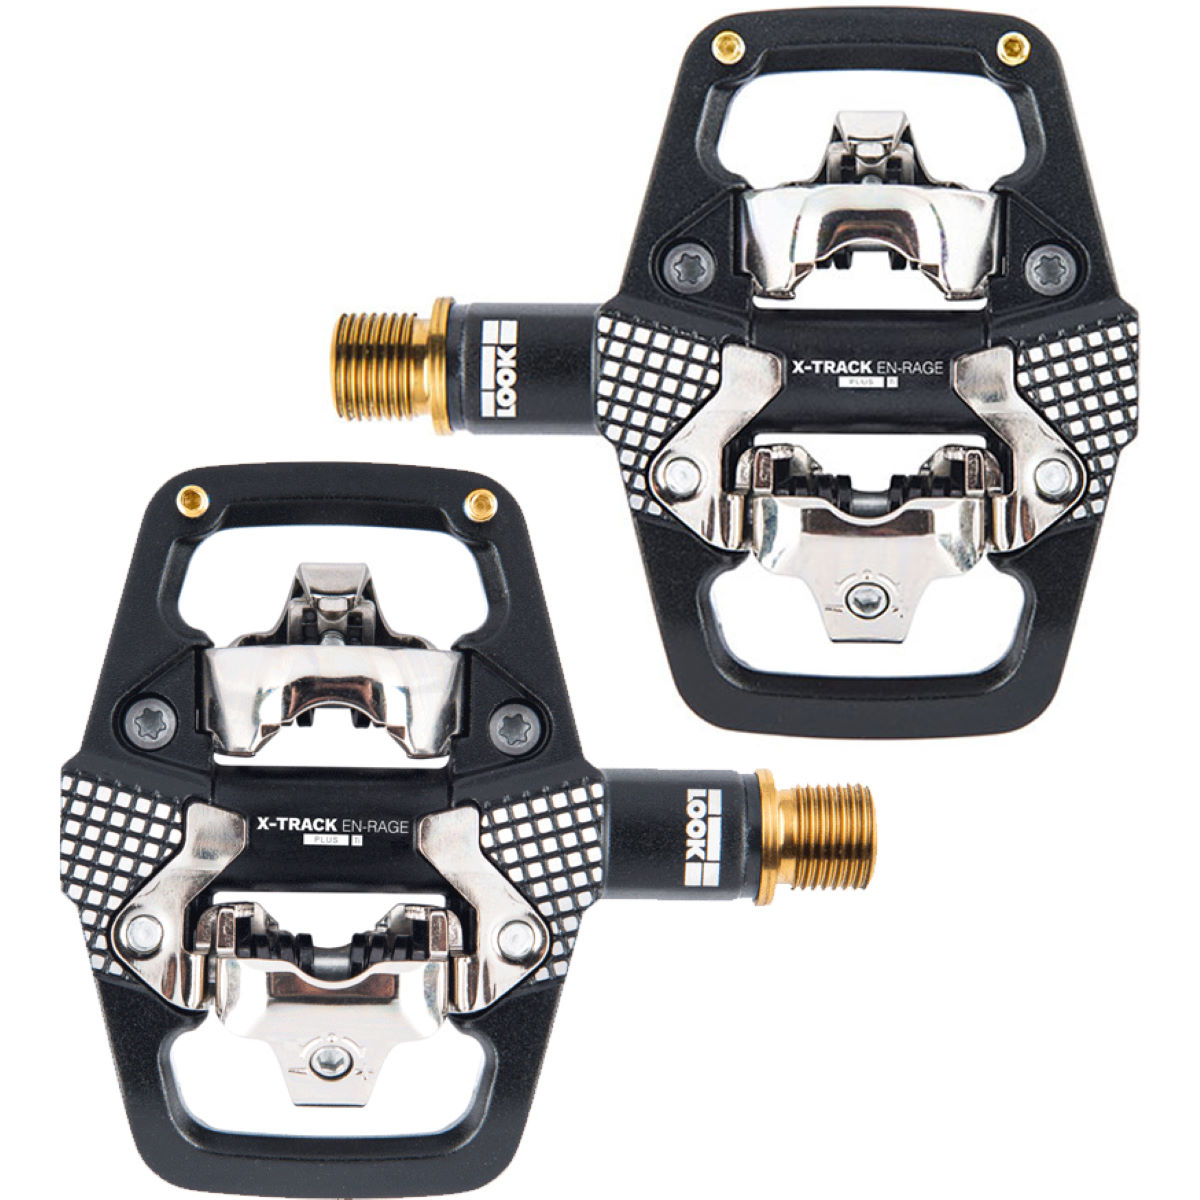 Look Look X-Track En-Rage Plus Ti MTB Pedals   Clip-in Pedals